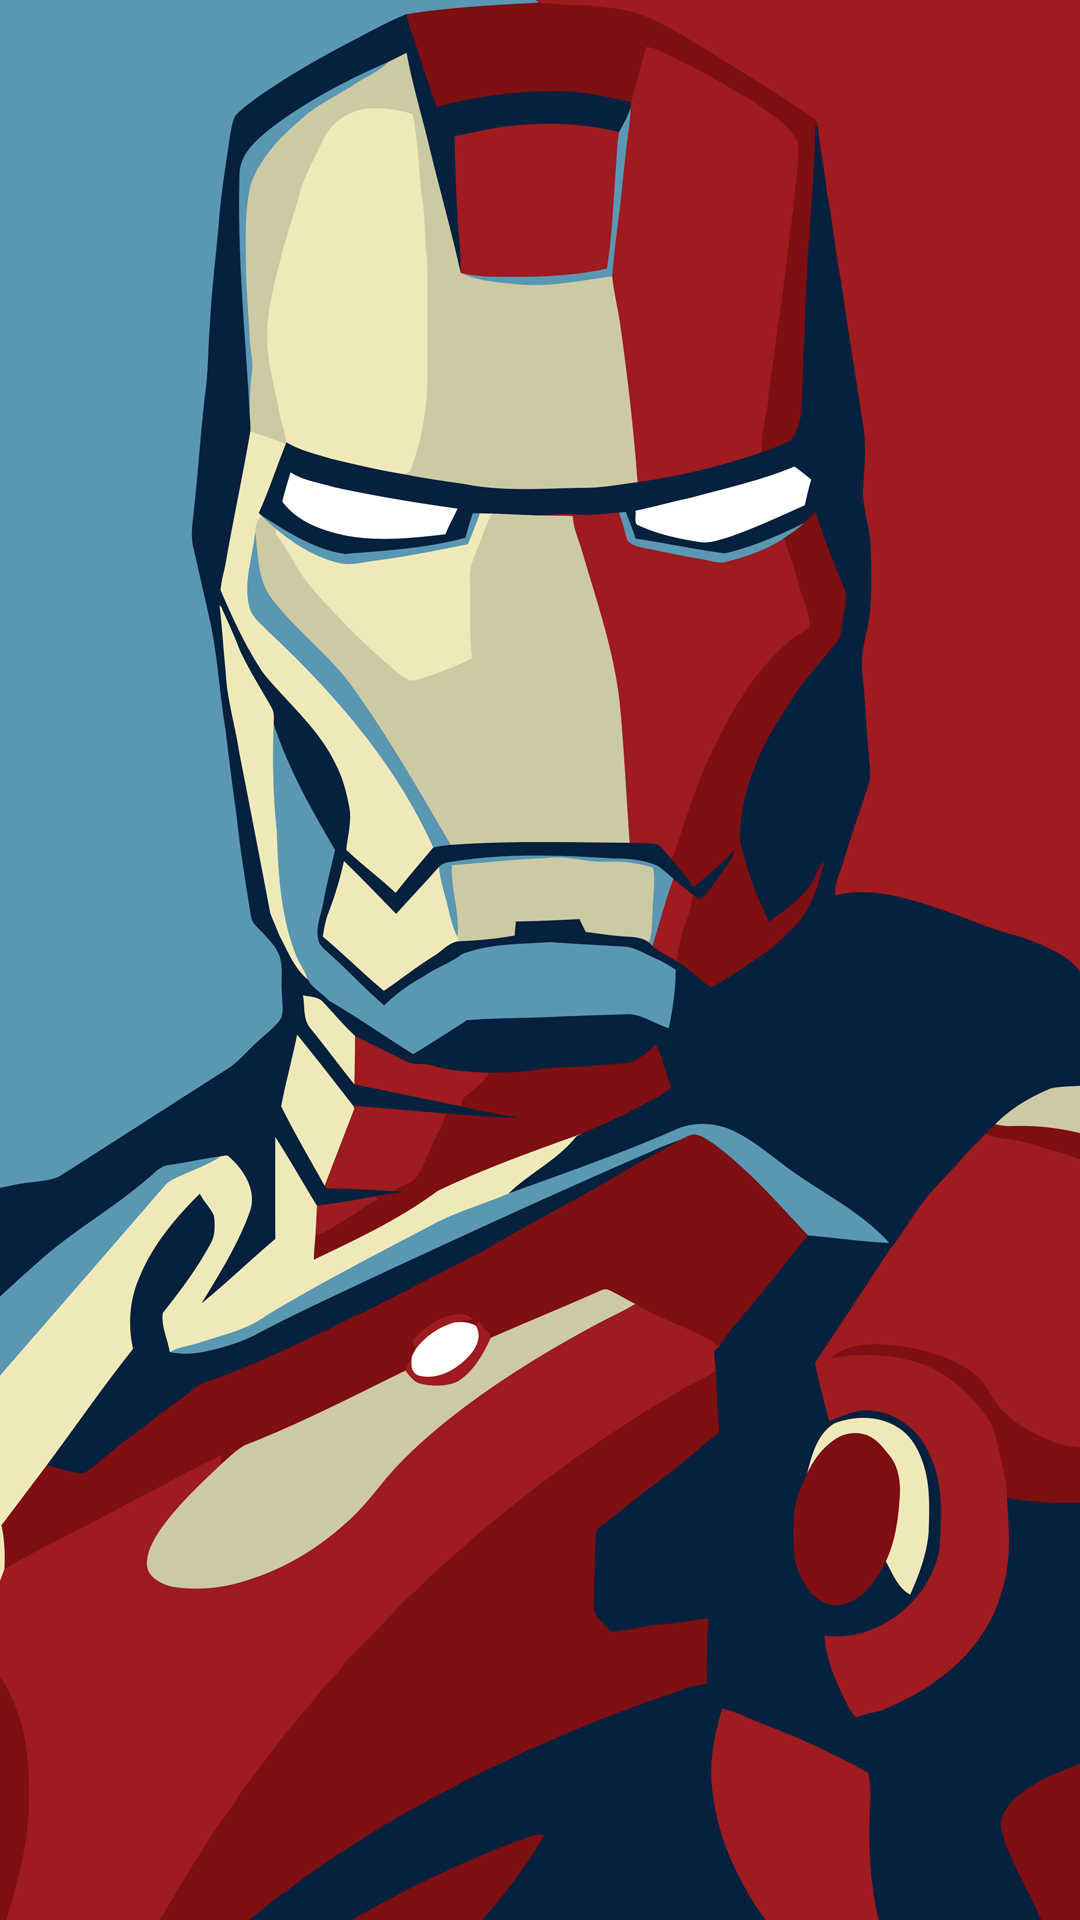 cool-iron-man-fond-d-écran-iphone-mobile-android-Check-more-at-http-all-images-net-iron-man-f-wallpaper-wp3004559